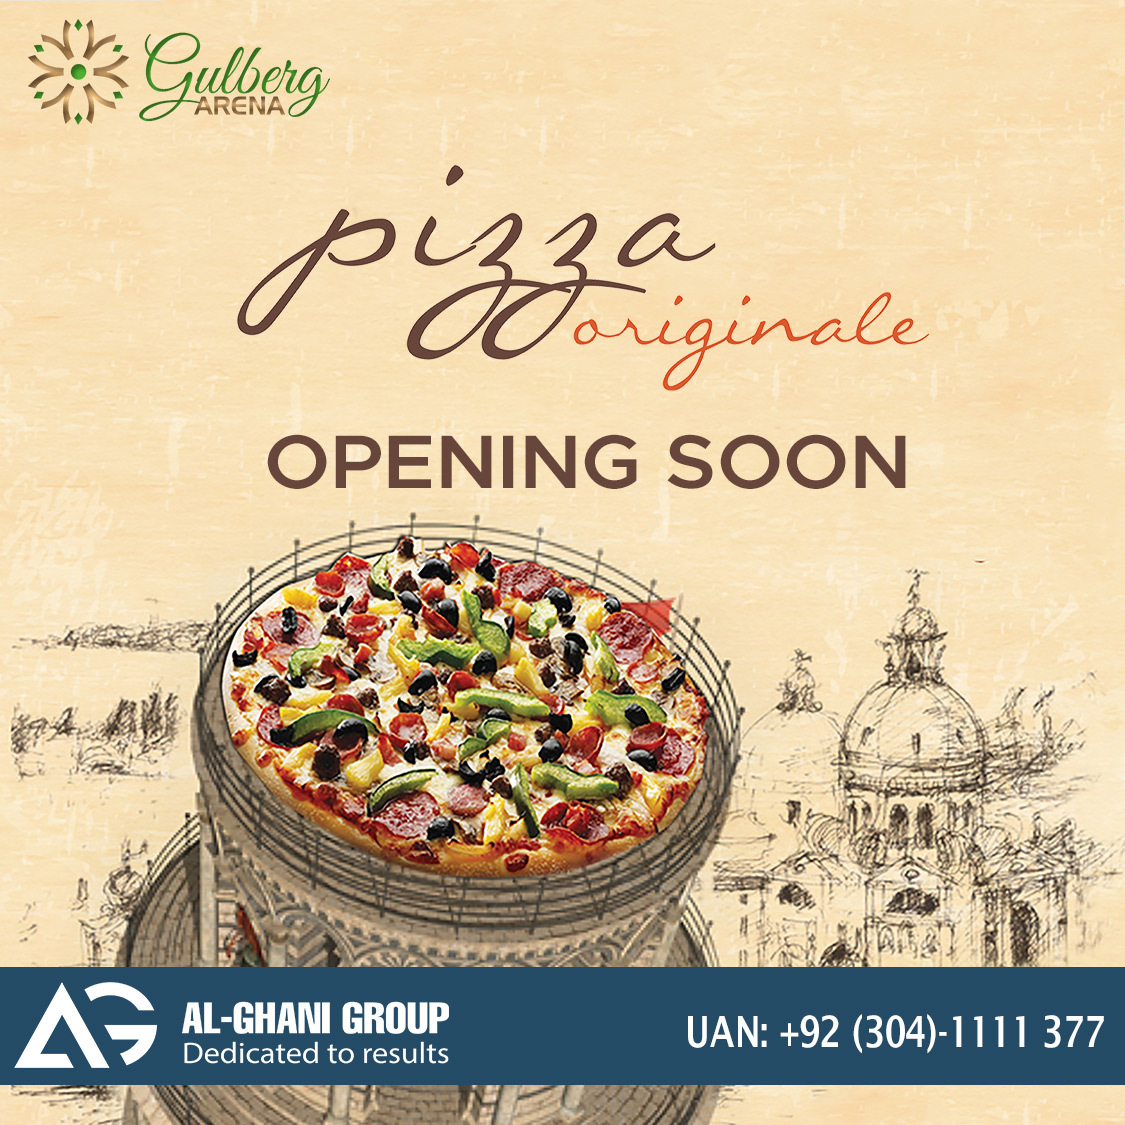 Pizaa originals outlet in Food Court gulberg arena at Gulberg Greens Islamabad